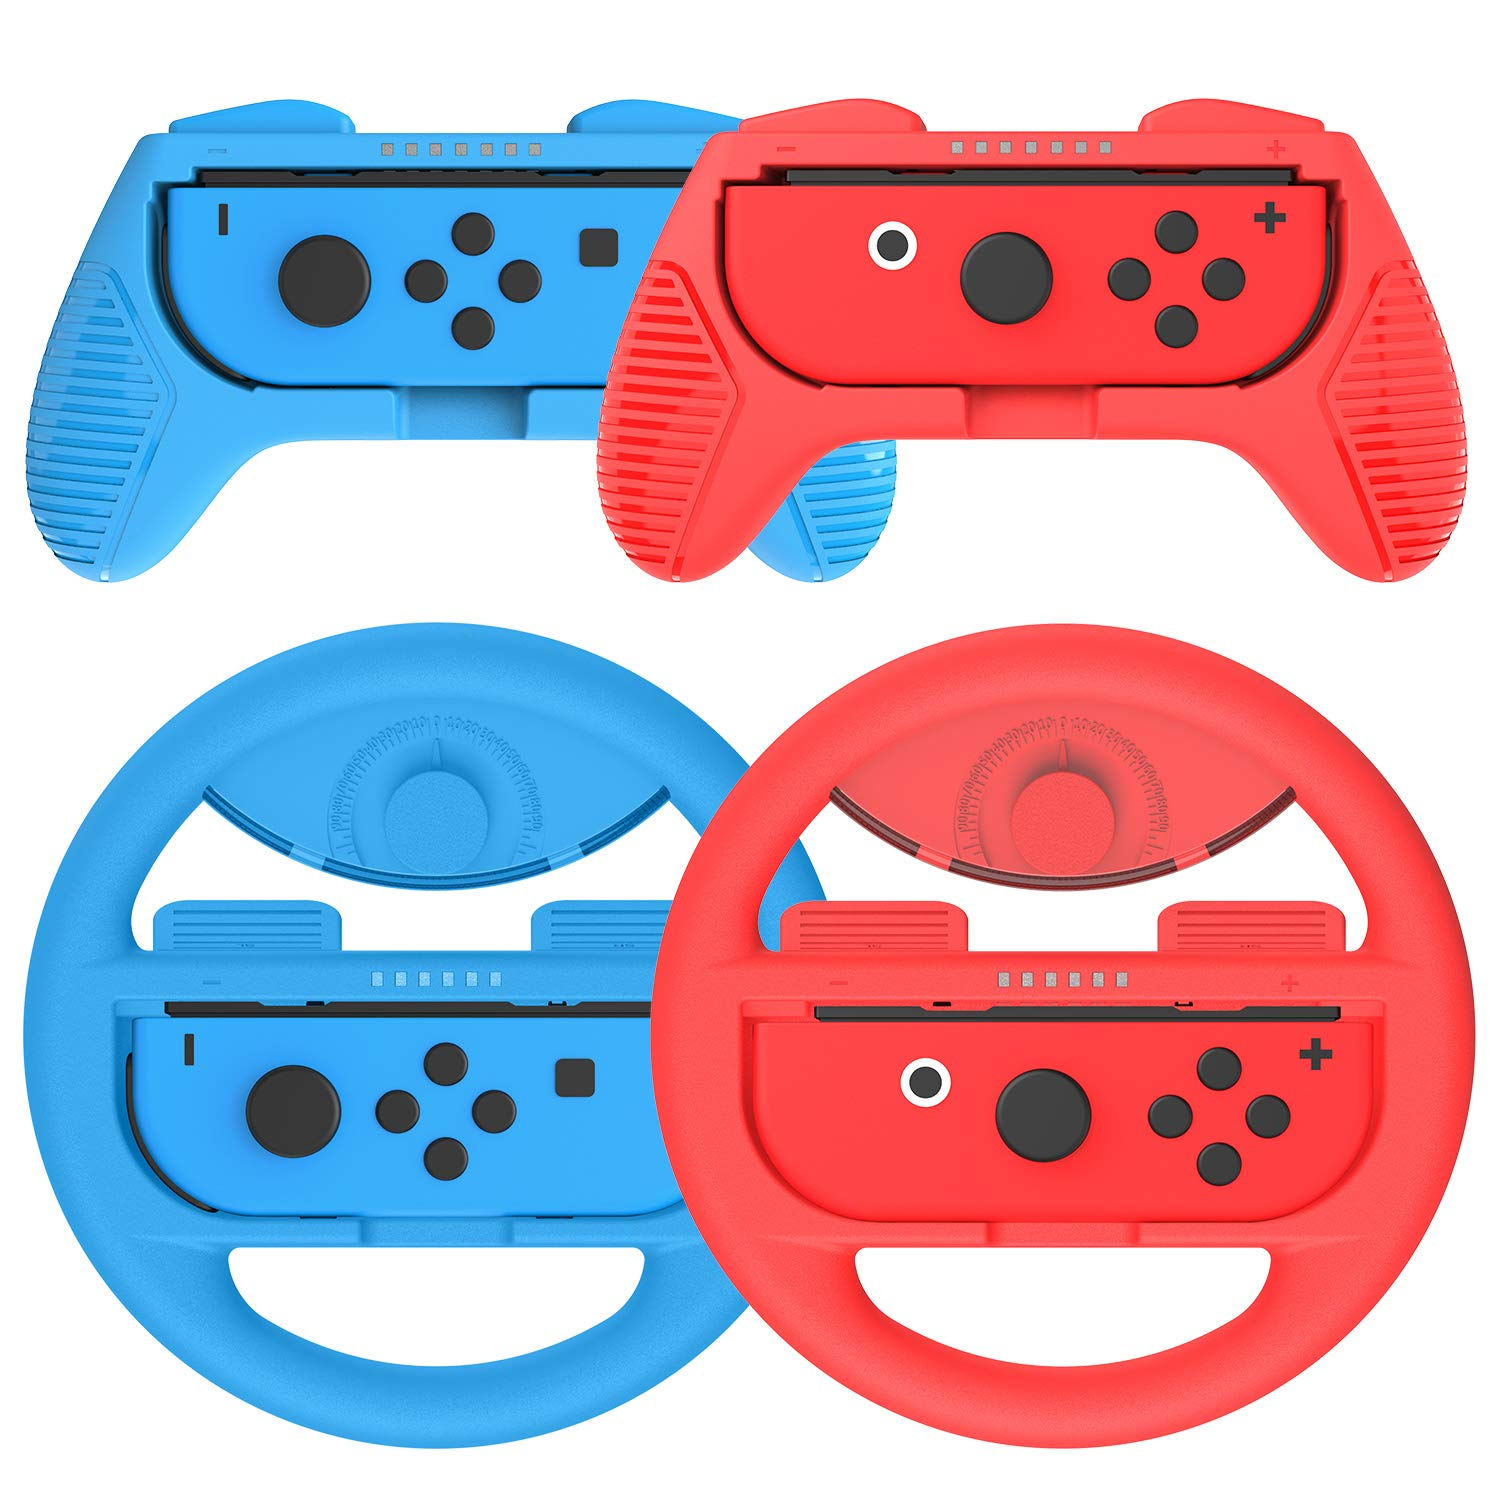 Joy-Con Grip (2 Pack) Joy-Con Steering Wheel (2 Pack) for Switch Joycon, Momen Game Hand Grip Accessory Kit Cover Case for N-Switch Joy-Con Controller (Blue, Red) by momen